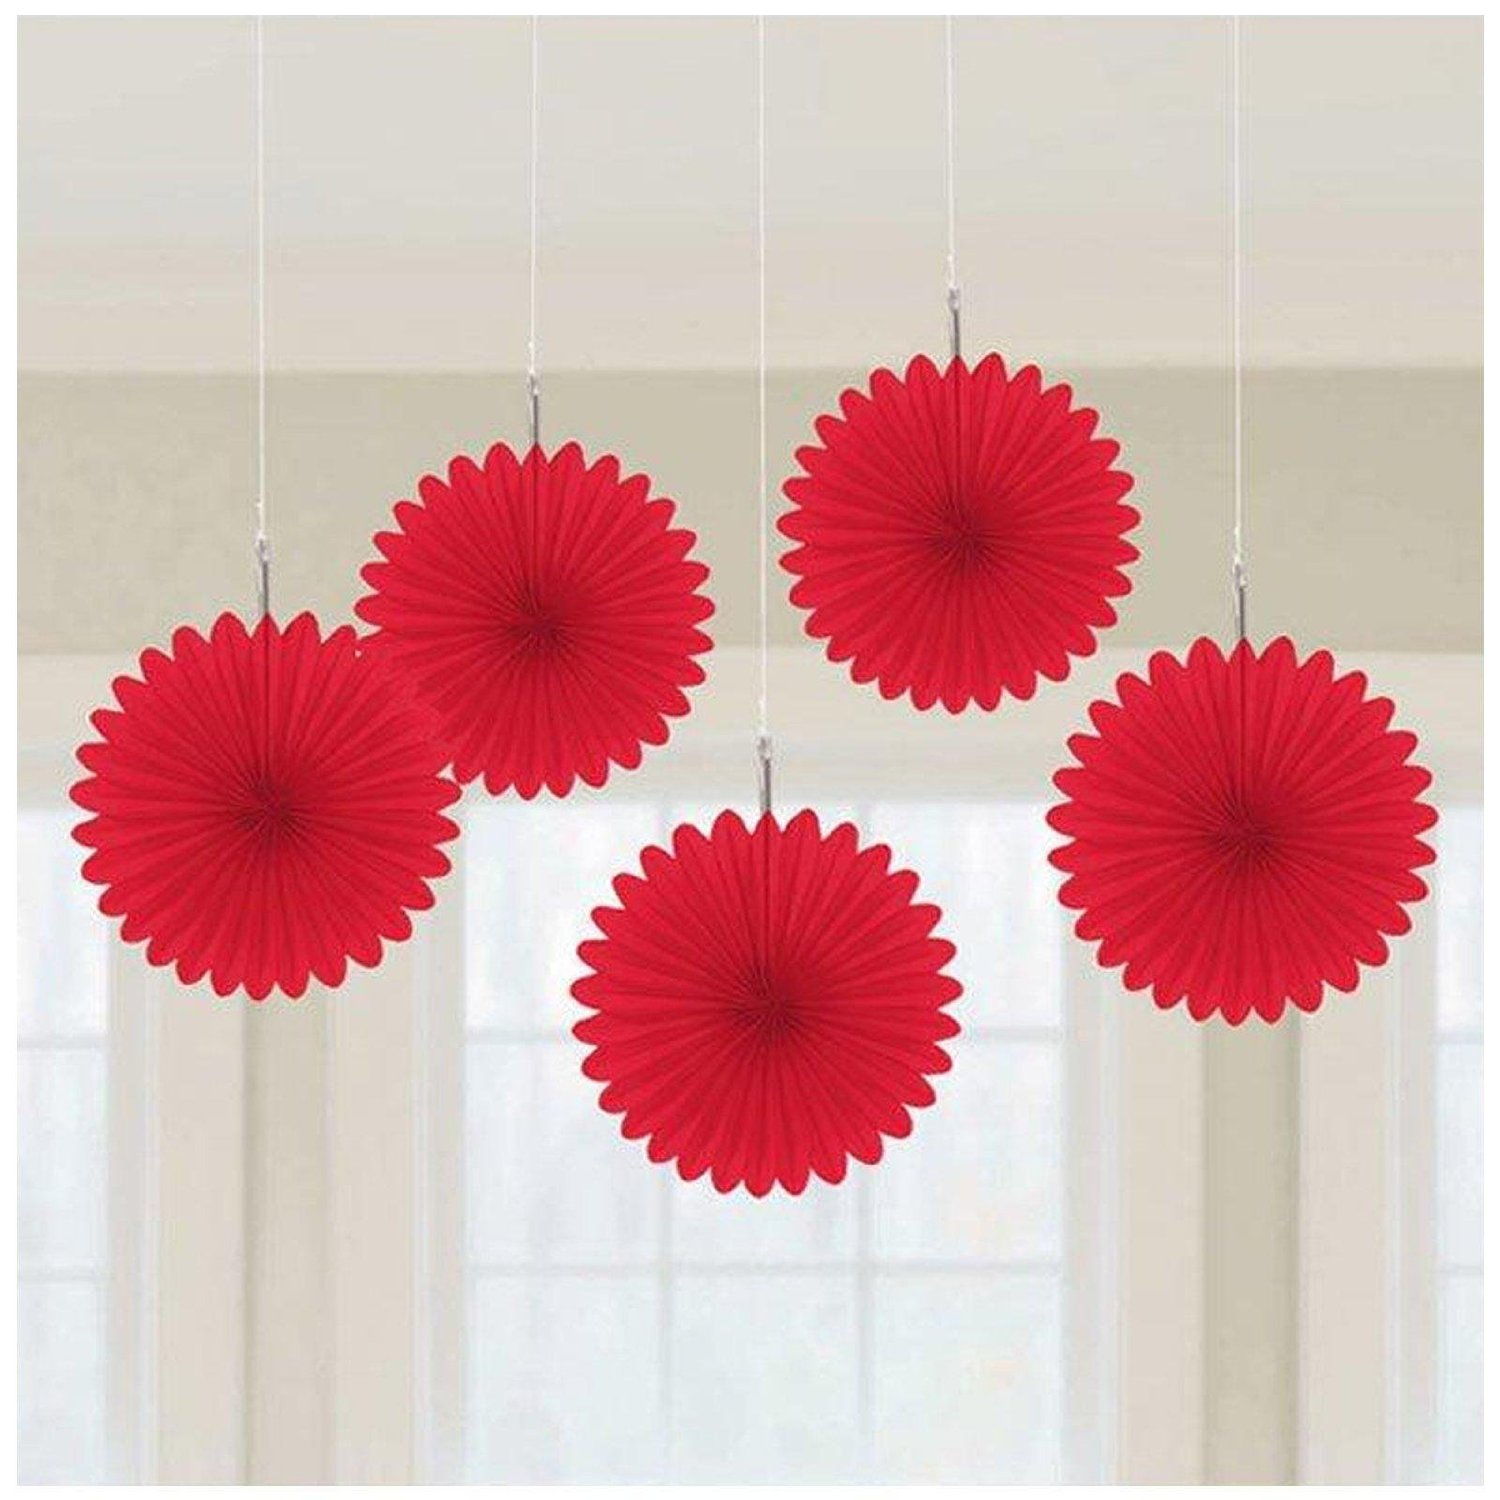 5 X Red Paper Fans Hanging Decorations Ruby Wedding Red Colour Theme